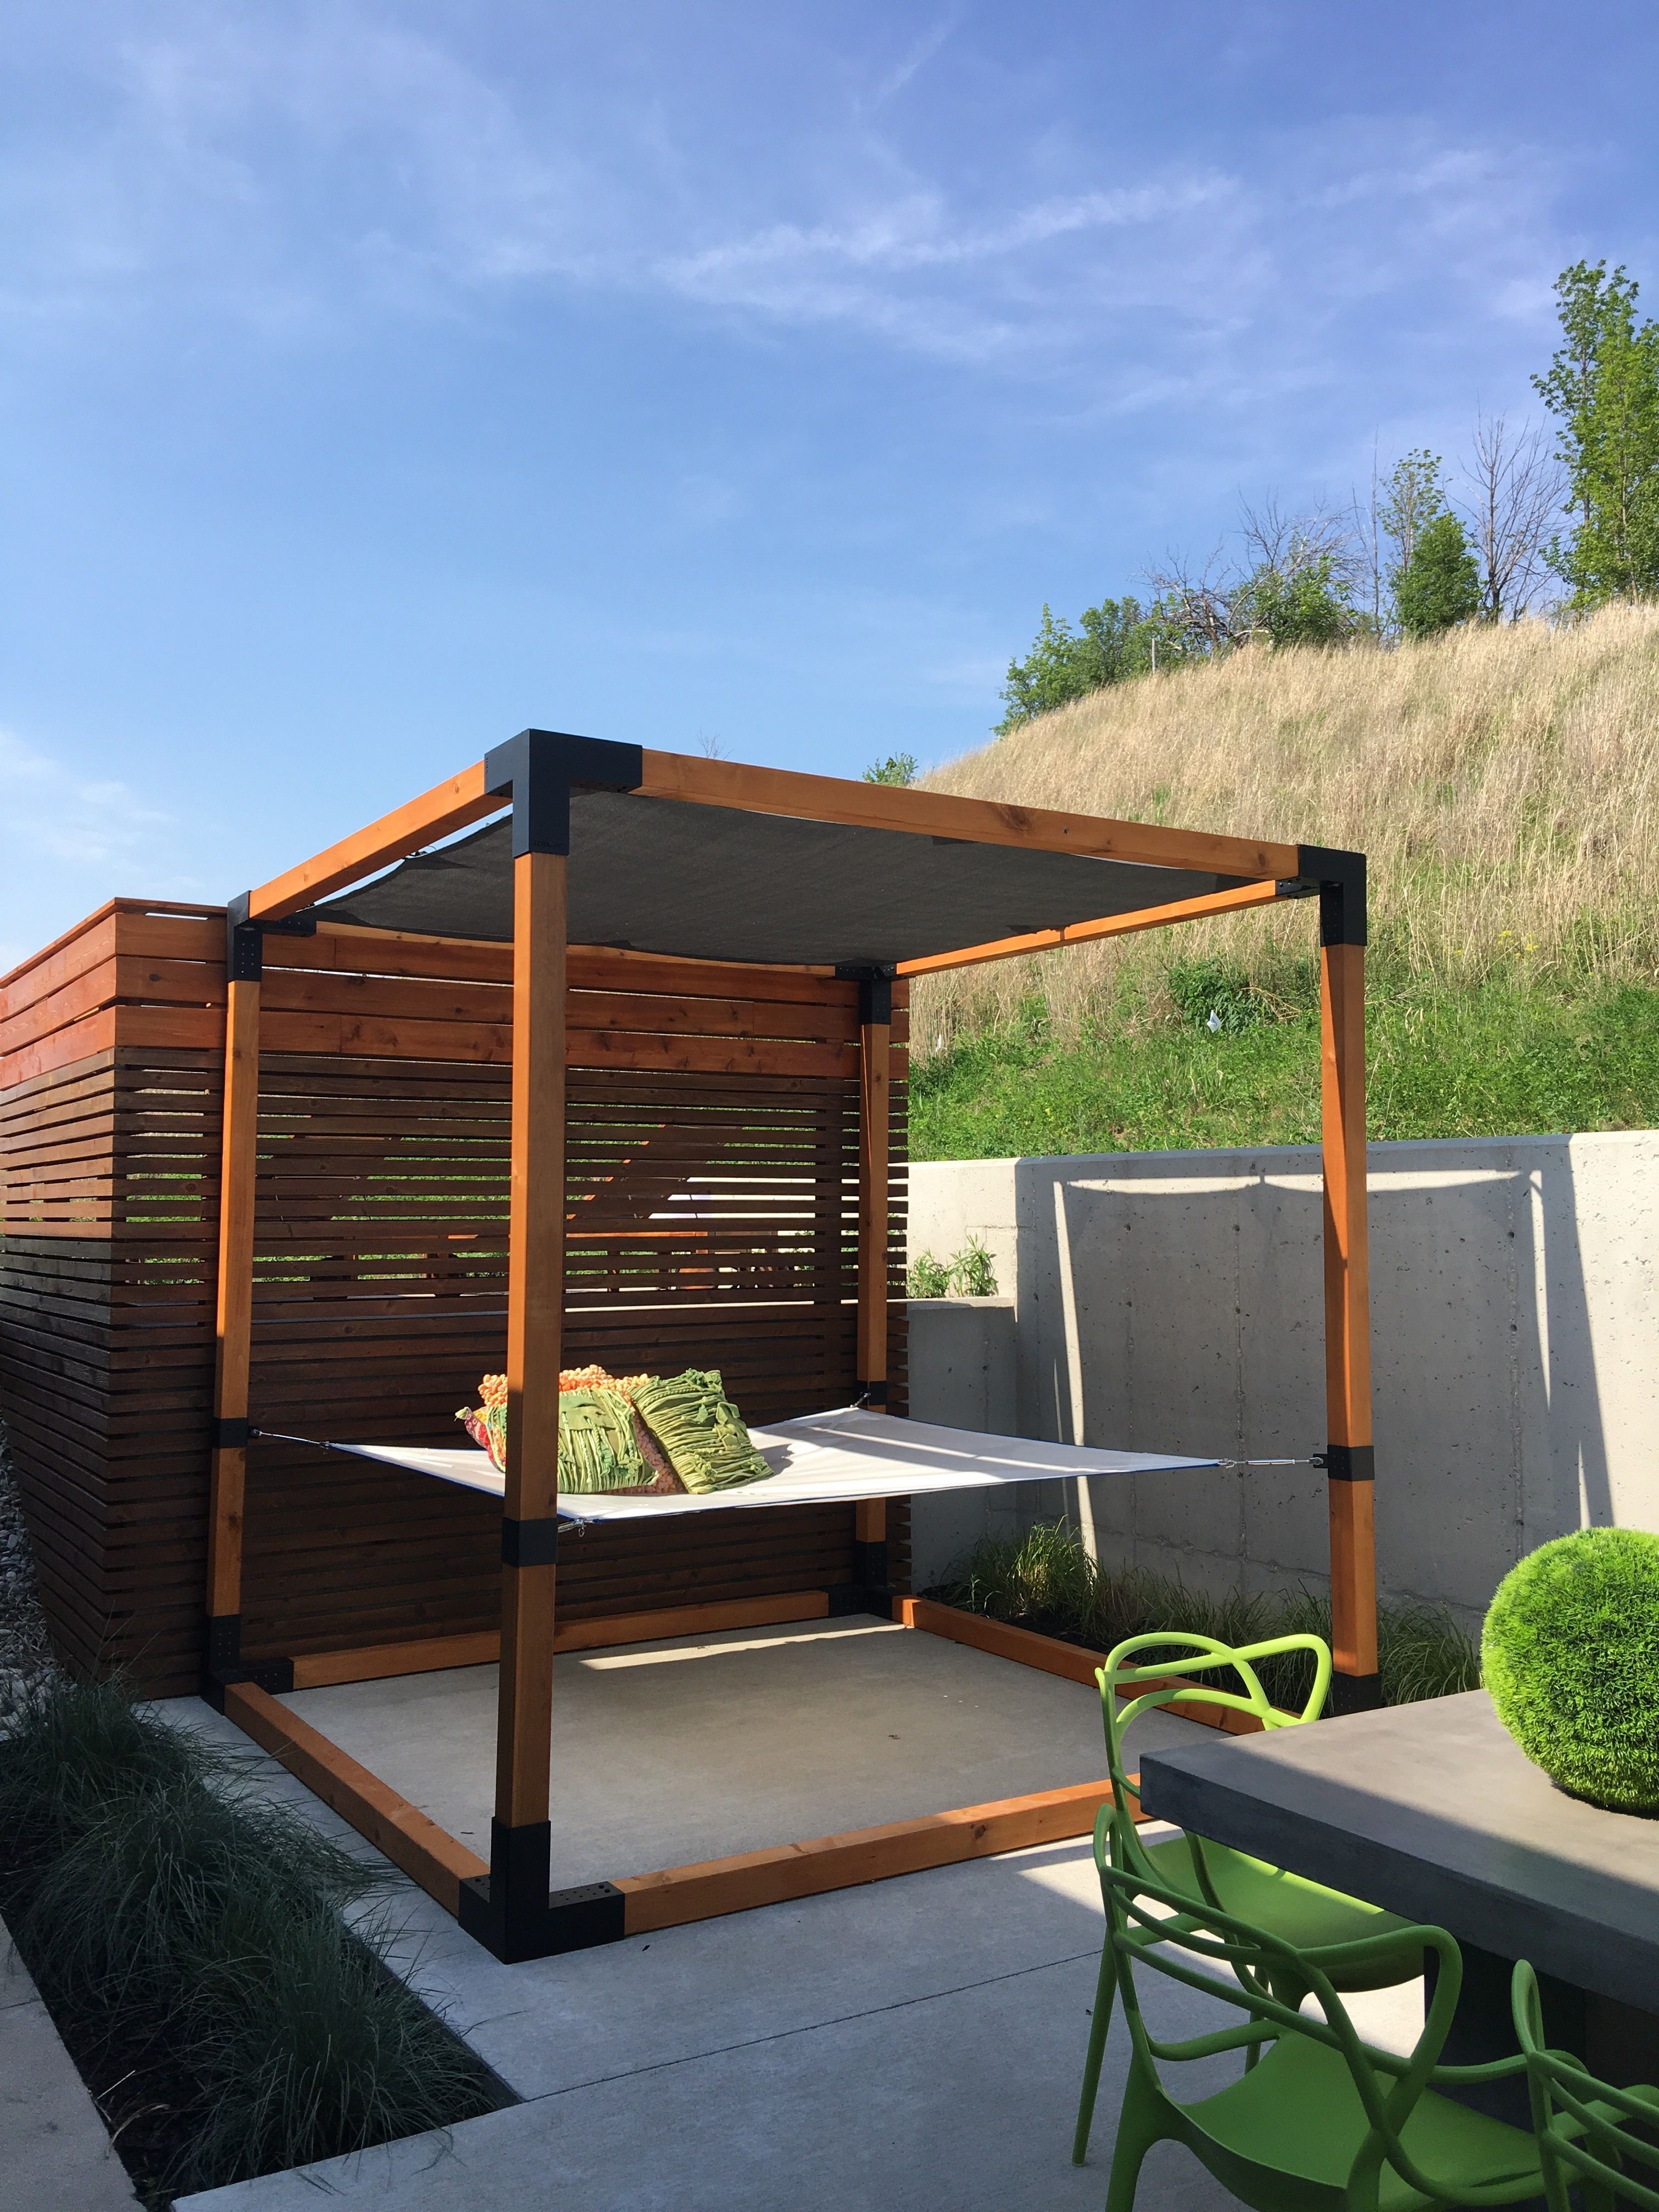 Toja Grid The Modular Pergola System Transform Your Outdoor Space Or Patio Today With A Toja Grid Pergola Kit Outdoor Pergola Pergola Plans Pergola Designs